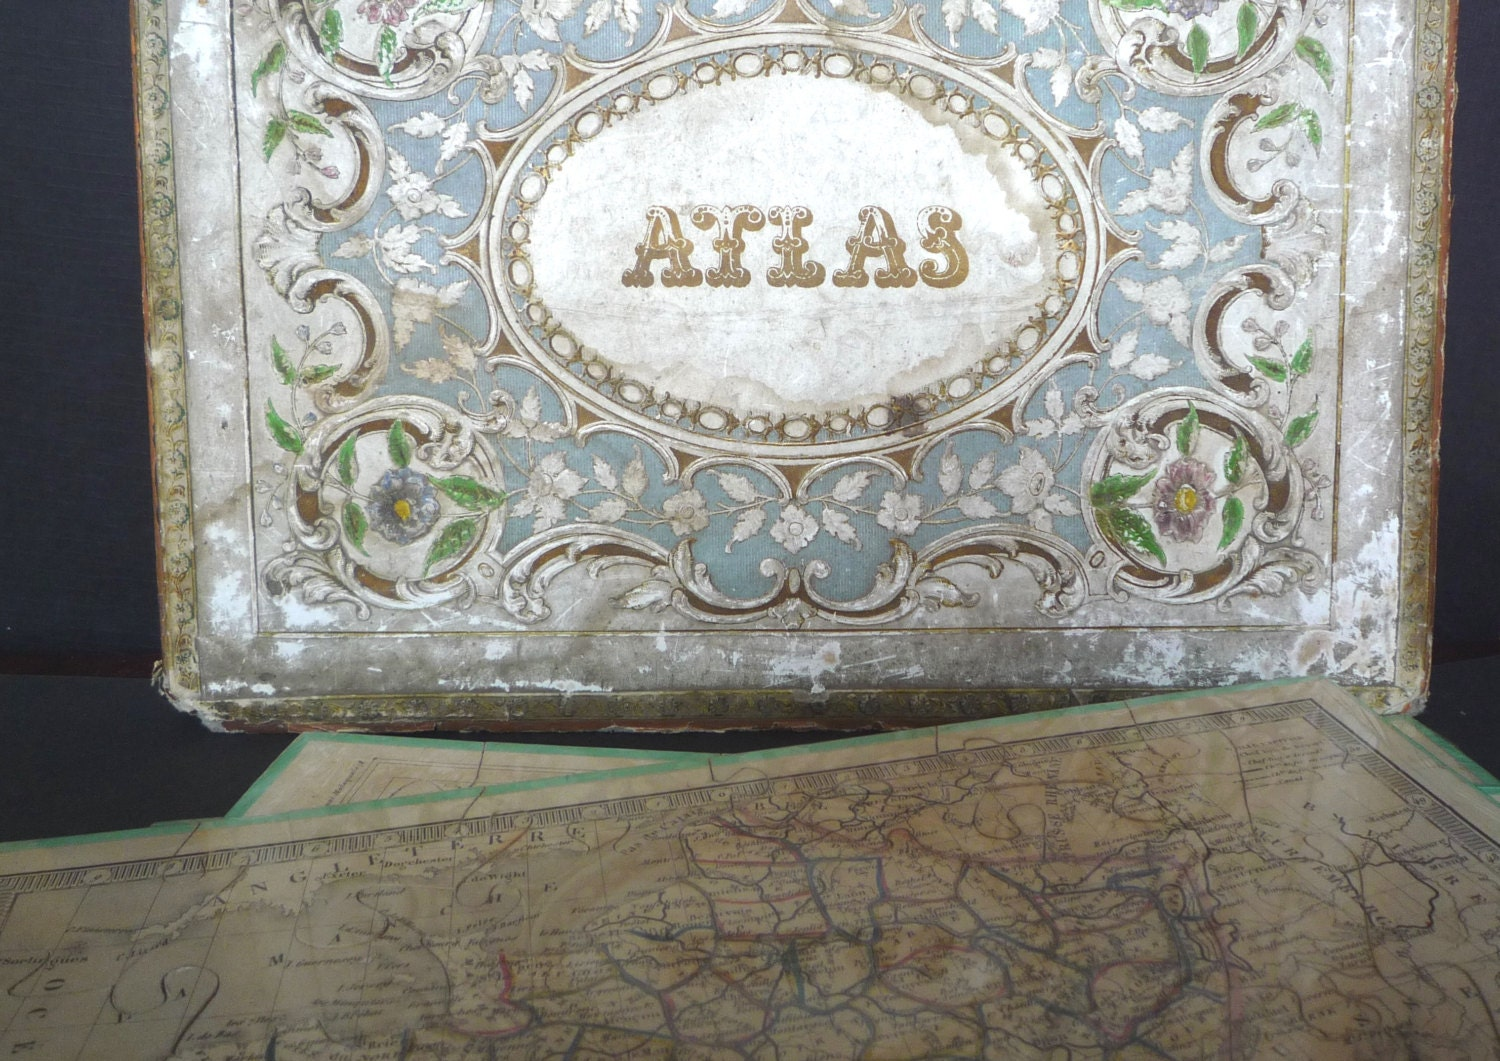 Antique French Dissected Puzzles Atlas Geographique Victorian Puzzle Map Dissected Maps of France Gironde The World